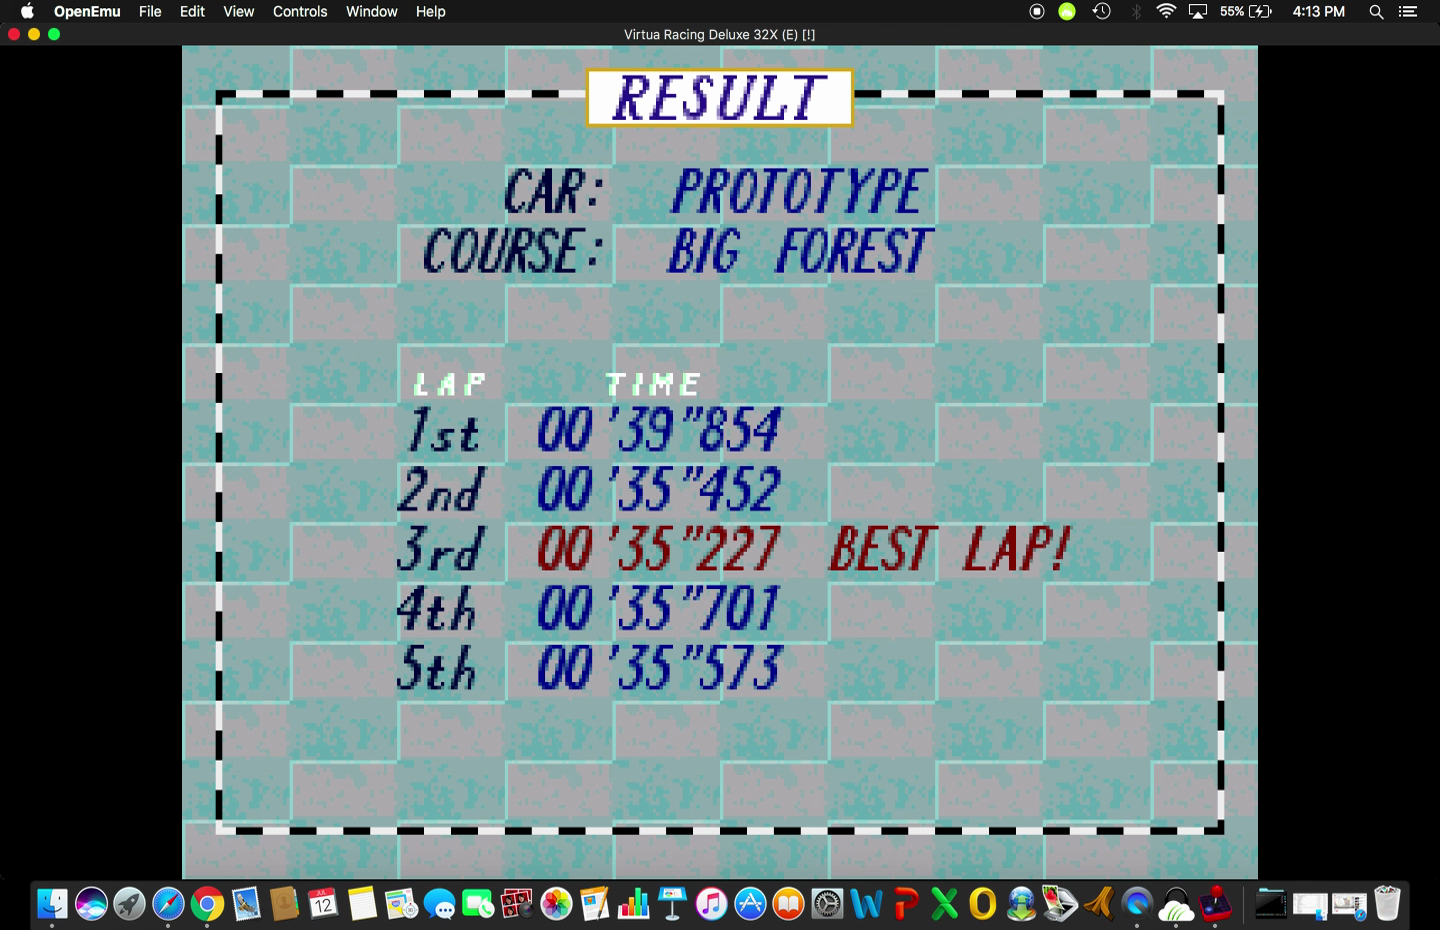 Marco1019: Virtua Racing Deluxe [Sega 32X]: Time Attack: Big Forest [5 Laps/Prototype] (Sega Genesis / MegaDrive Emulated) 0:03:01.807 points on 2017-07-21 22:10:53